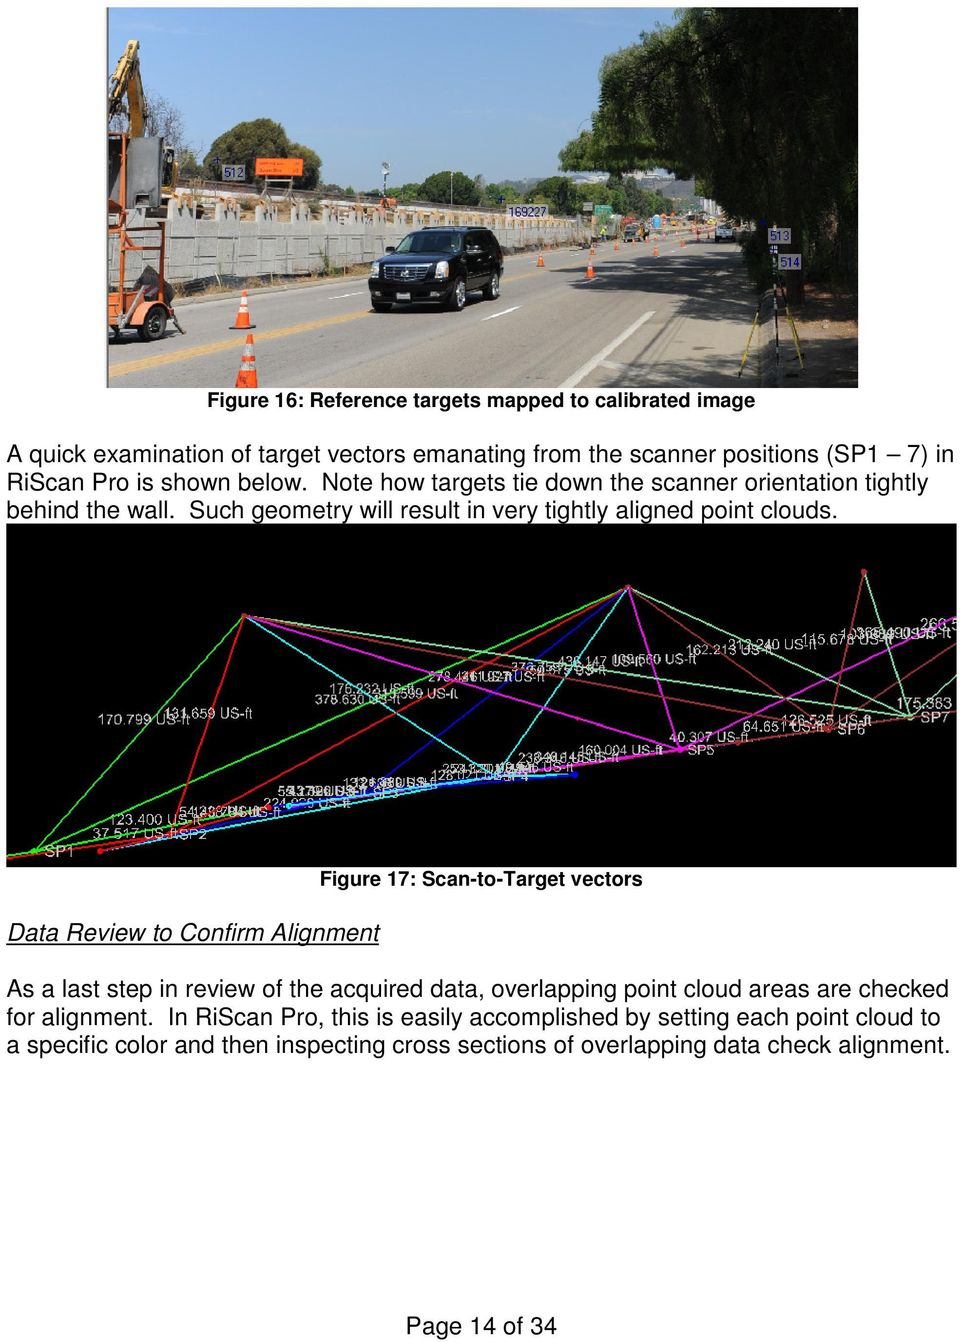 Data Review to Confirm Alignment Figure 17: Scan-to-Target vectors As a last step in review of the acquired data, overlapping point cloud areas are checked for